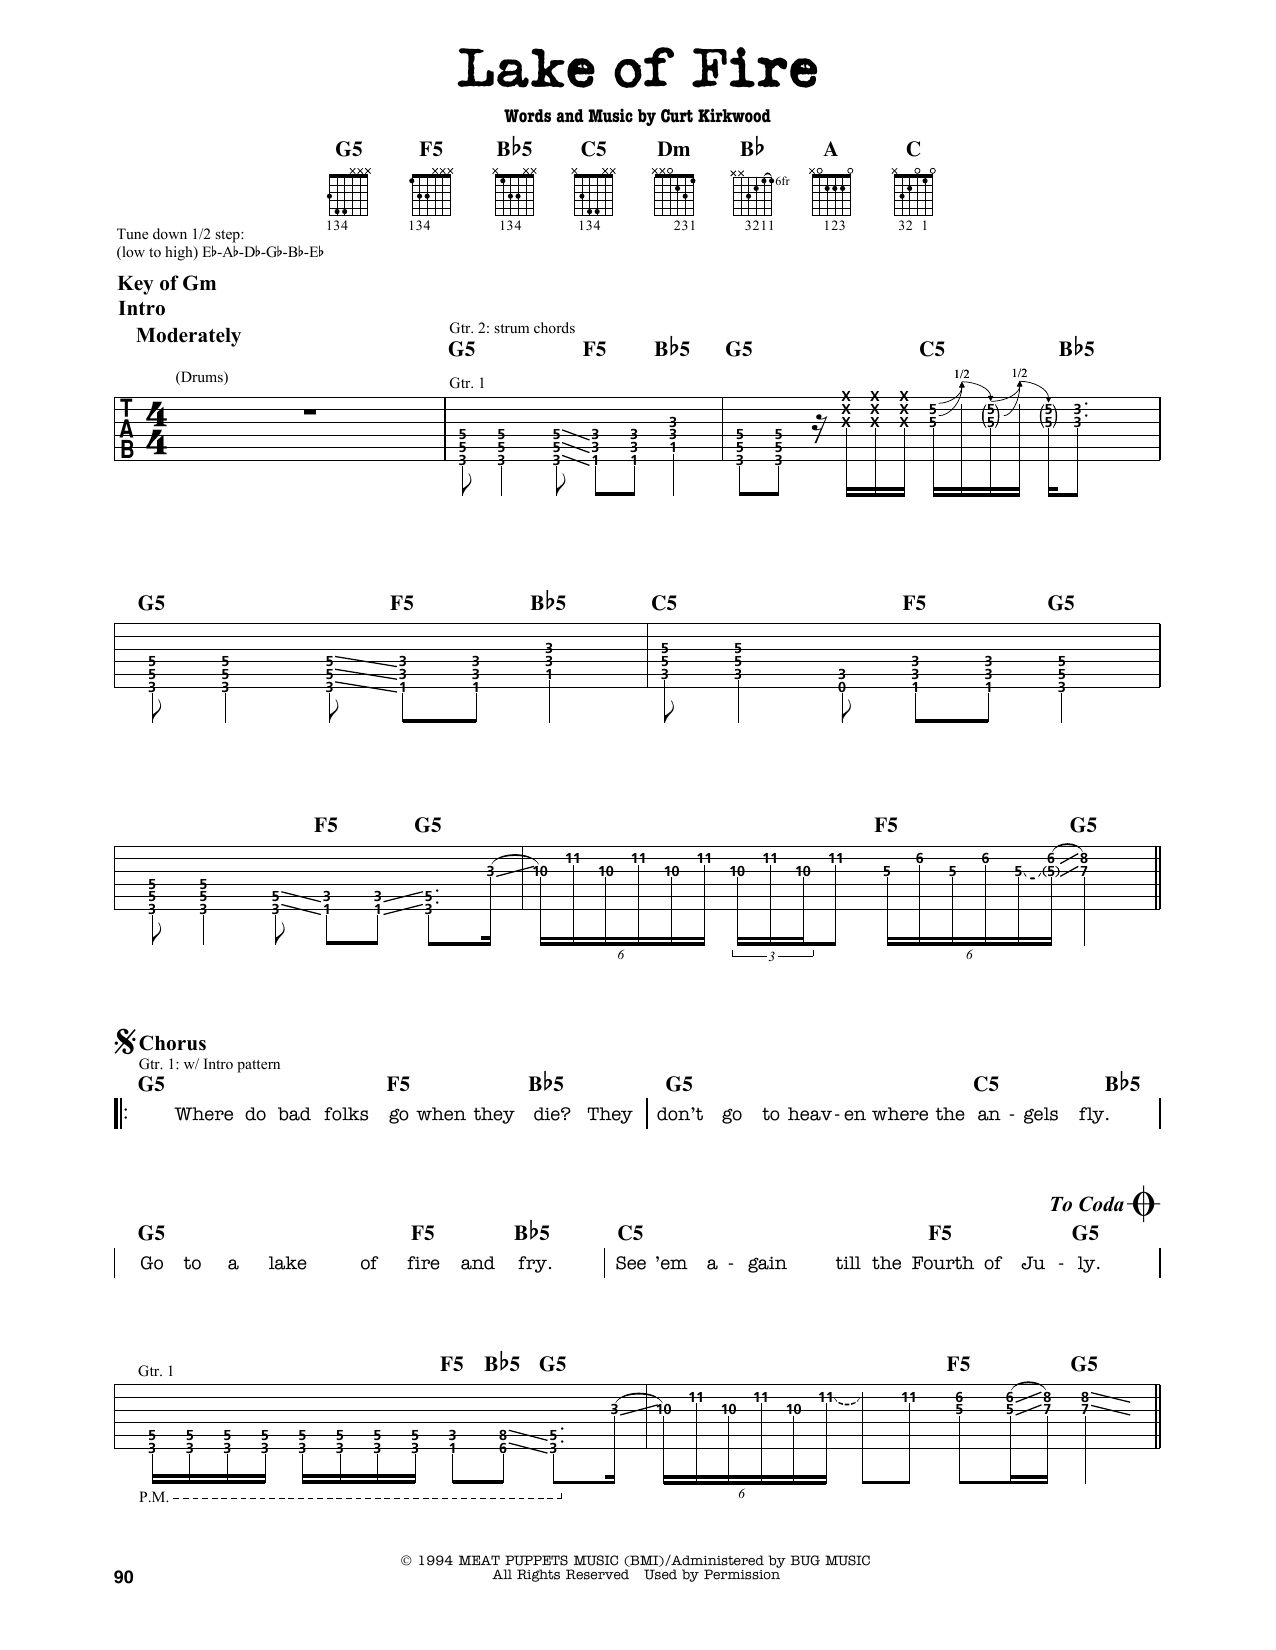 Nirvana Lake Of Fire Sheet Music Notes Chords Printable Pop